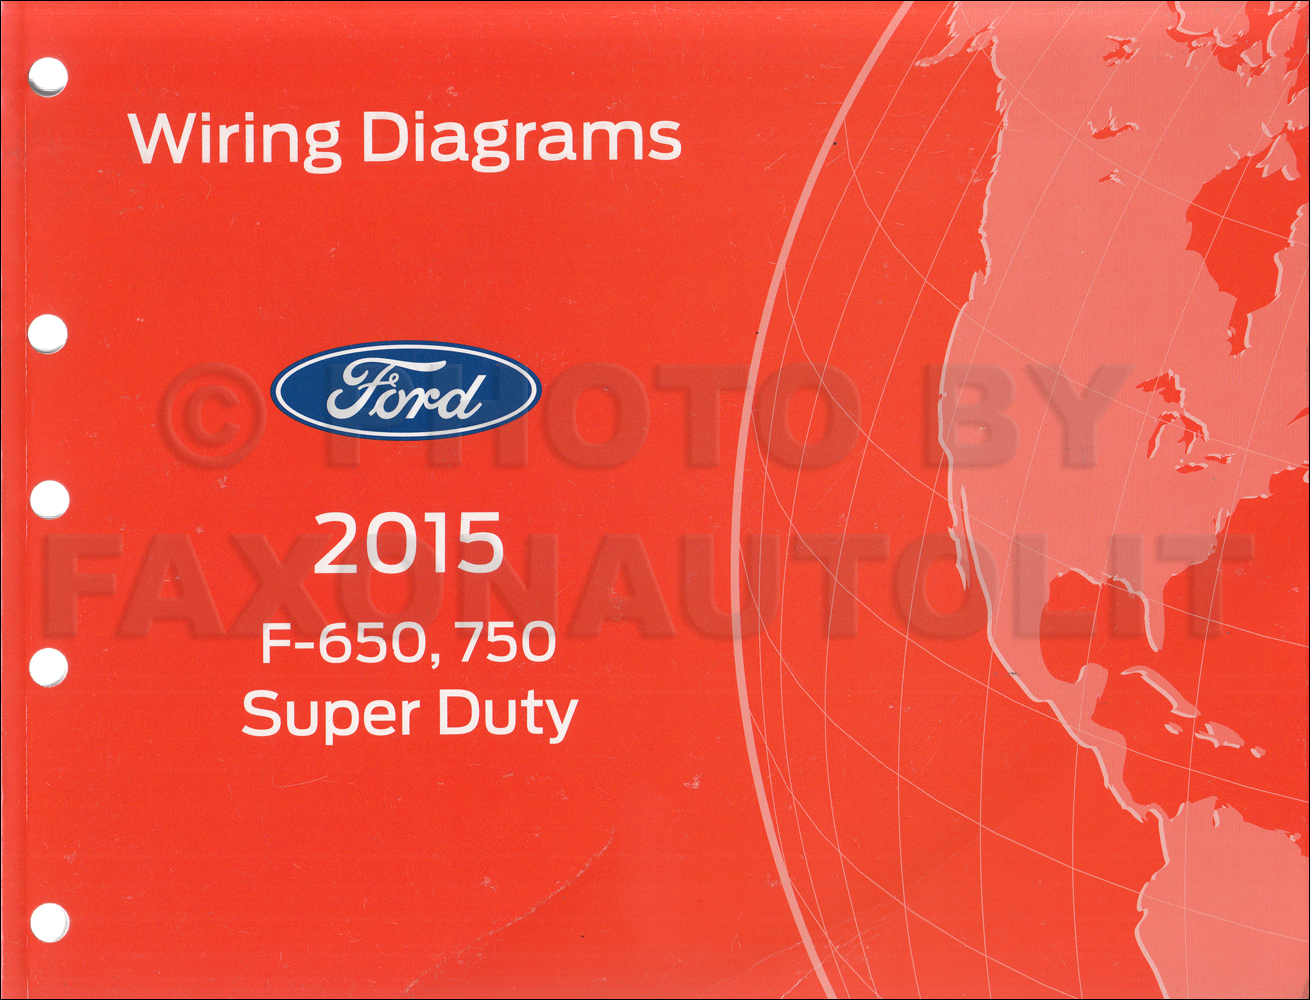 hight resolution of 2015 ford f650 wiring diagram pin 87 wiring diagram 2015 ford f 650 and f 750